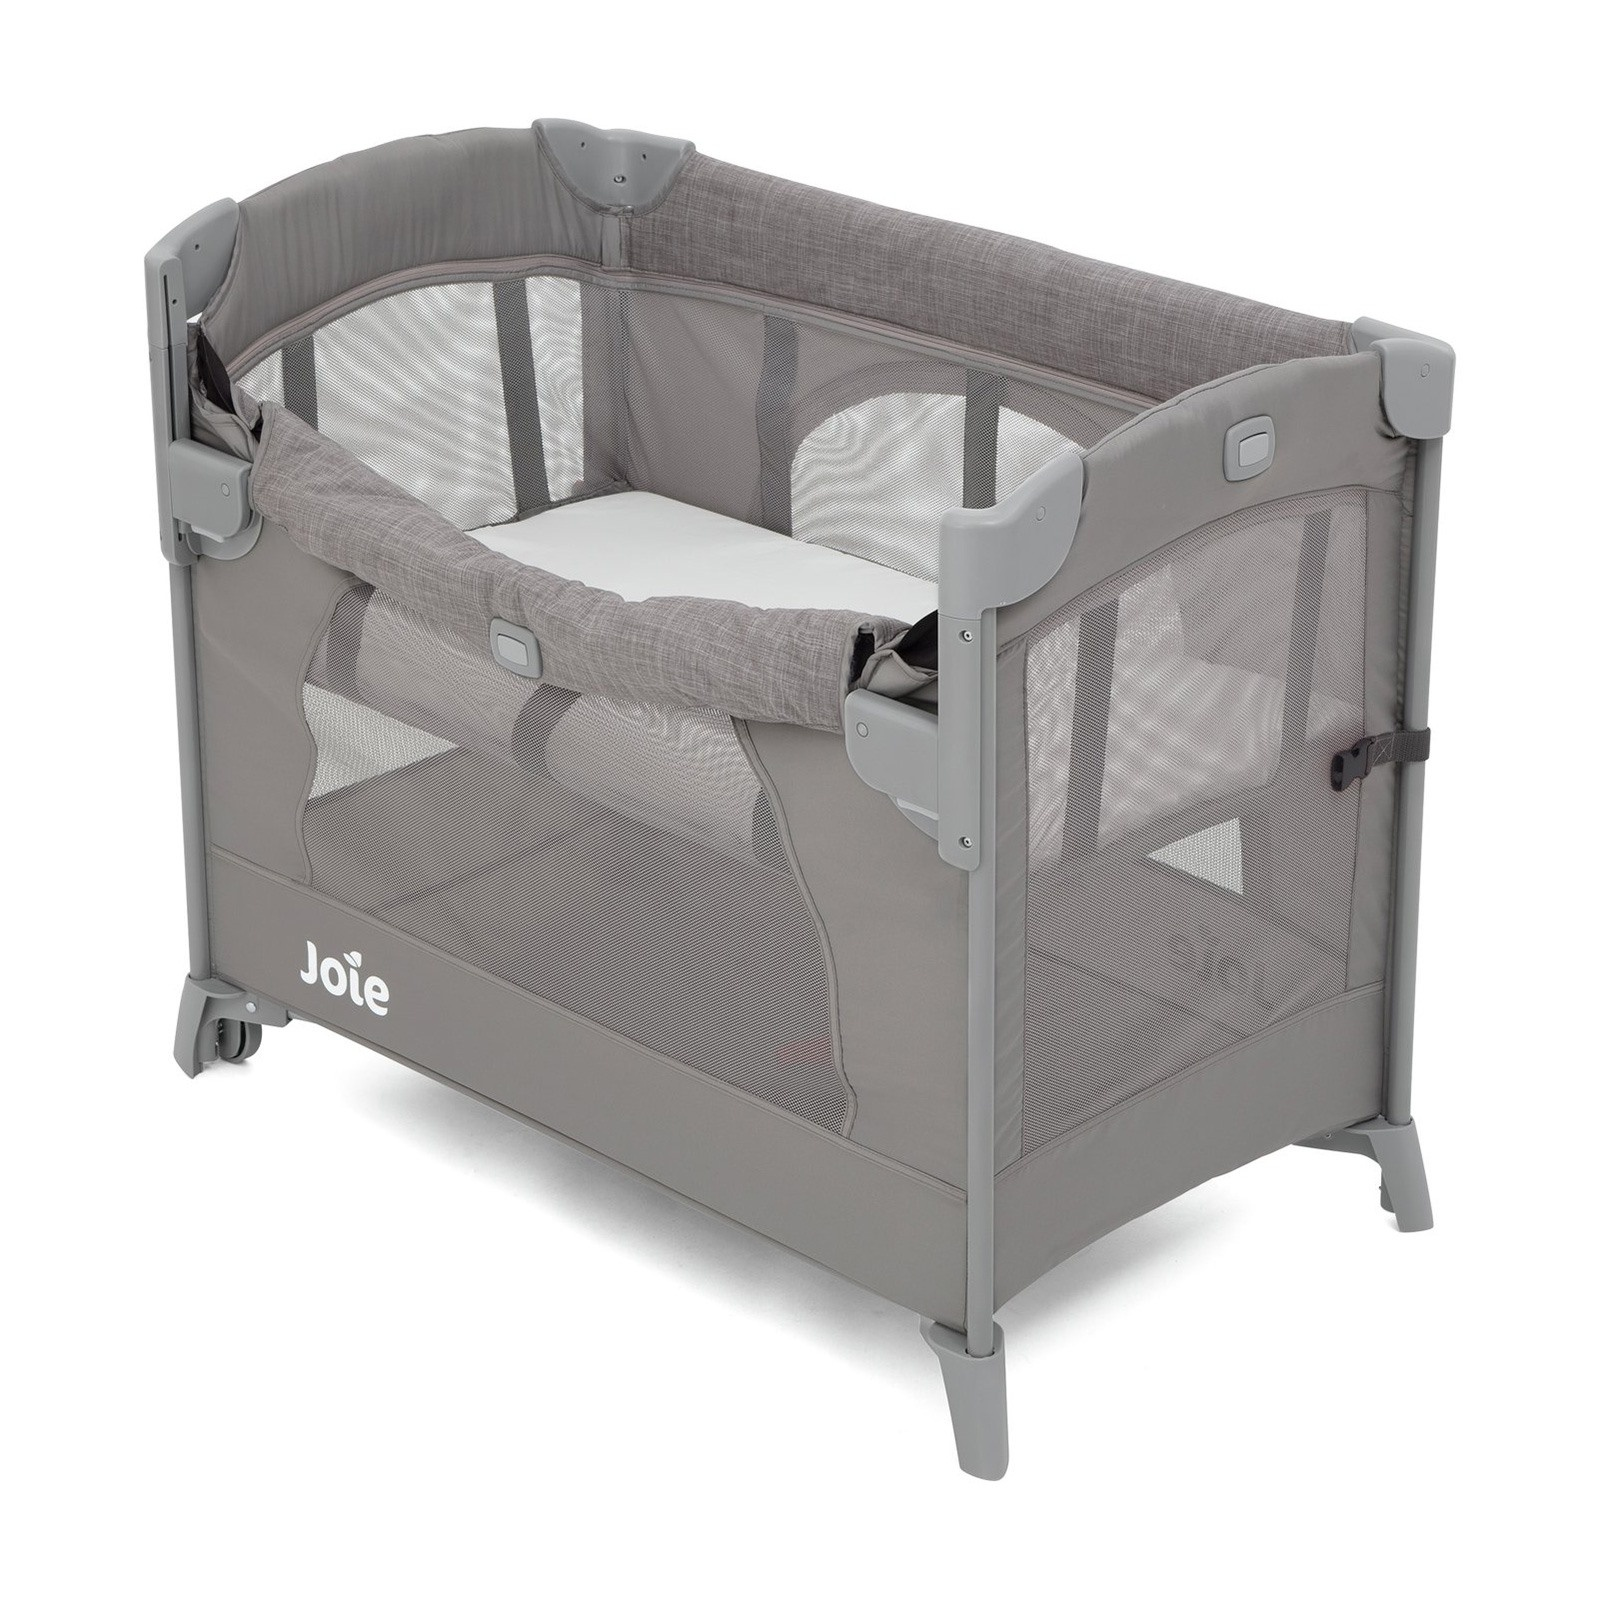 Ebebek Joie Kubbie Sleep Travel Cot Bed